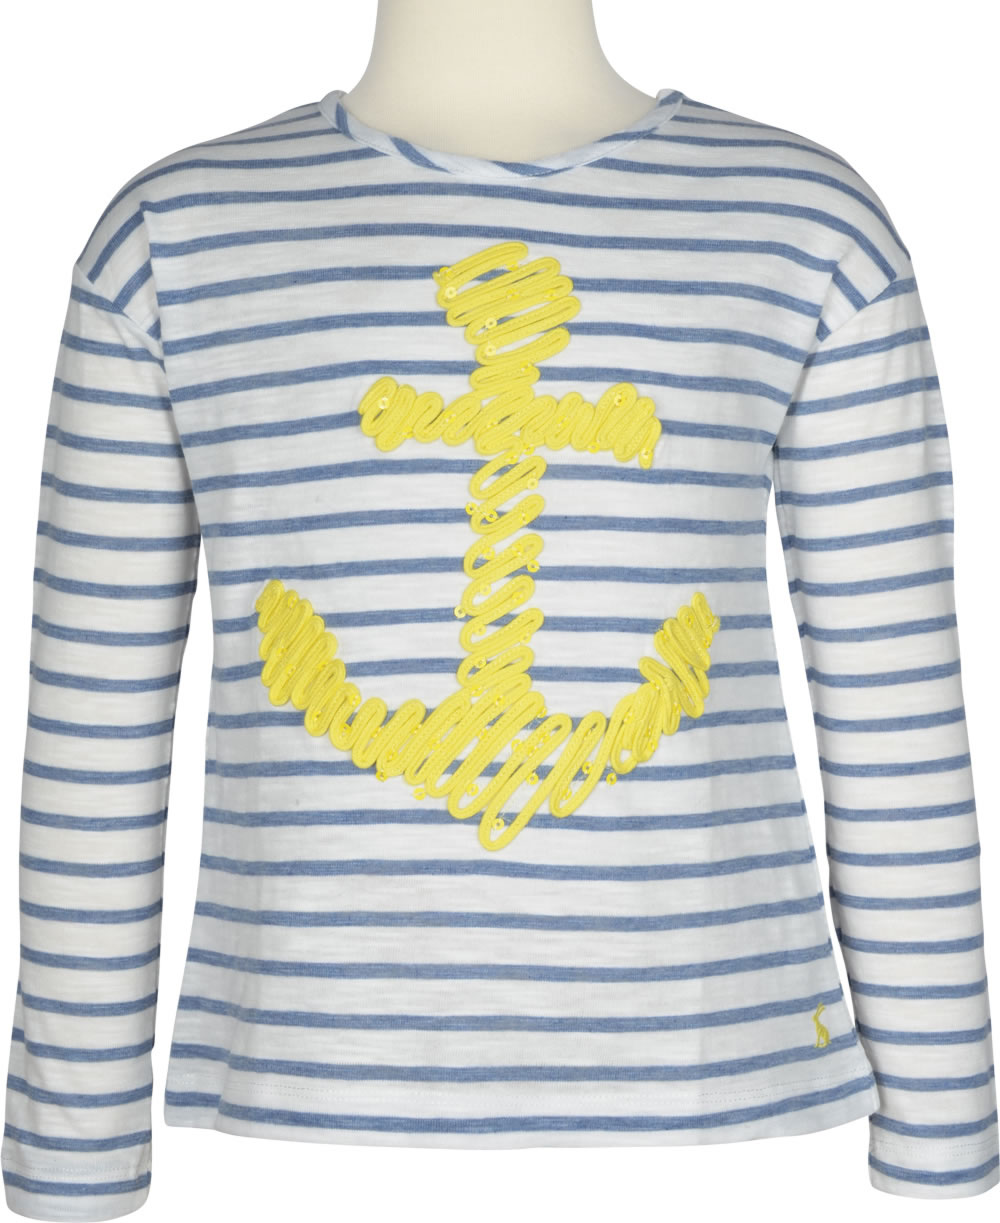 776d690365f92 White striped T-shirt with round neck and long sleeves and a maritime  anchor motif on the front. By TOM JOULE comes this beautiful garment